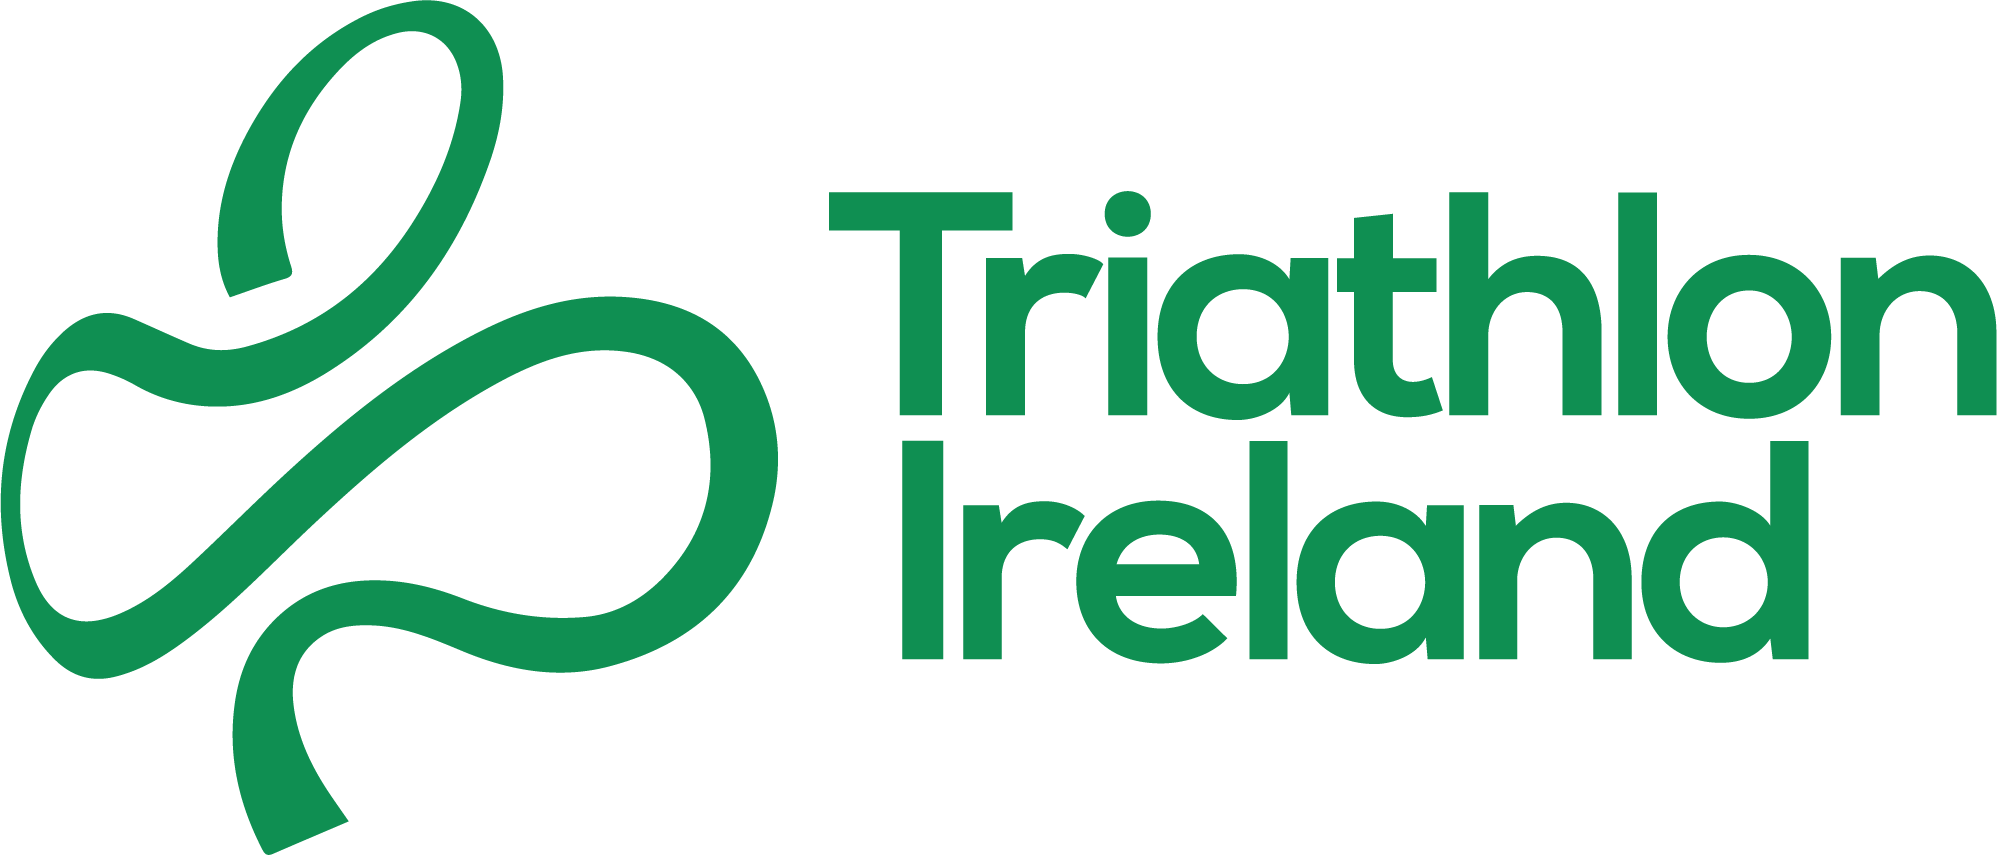 Triathlon Ireland Store Logo